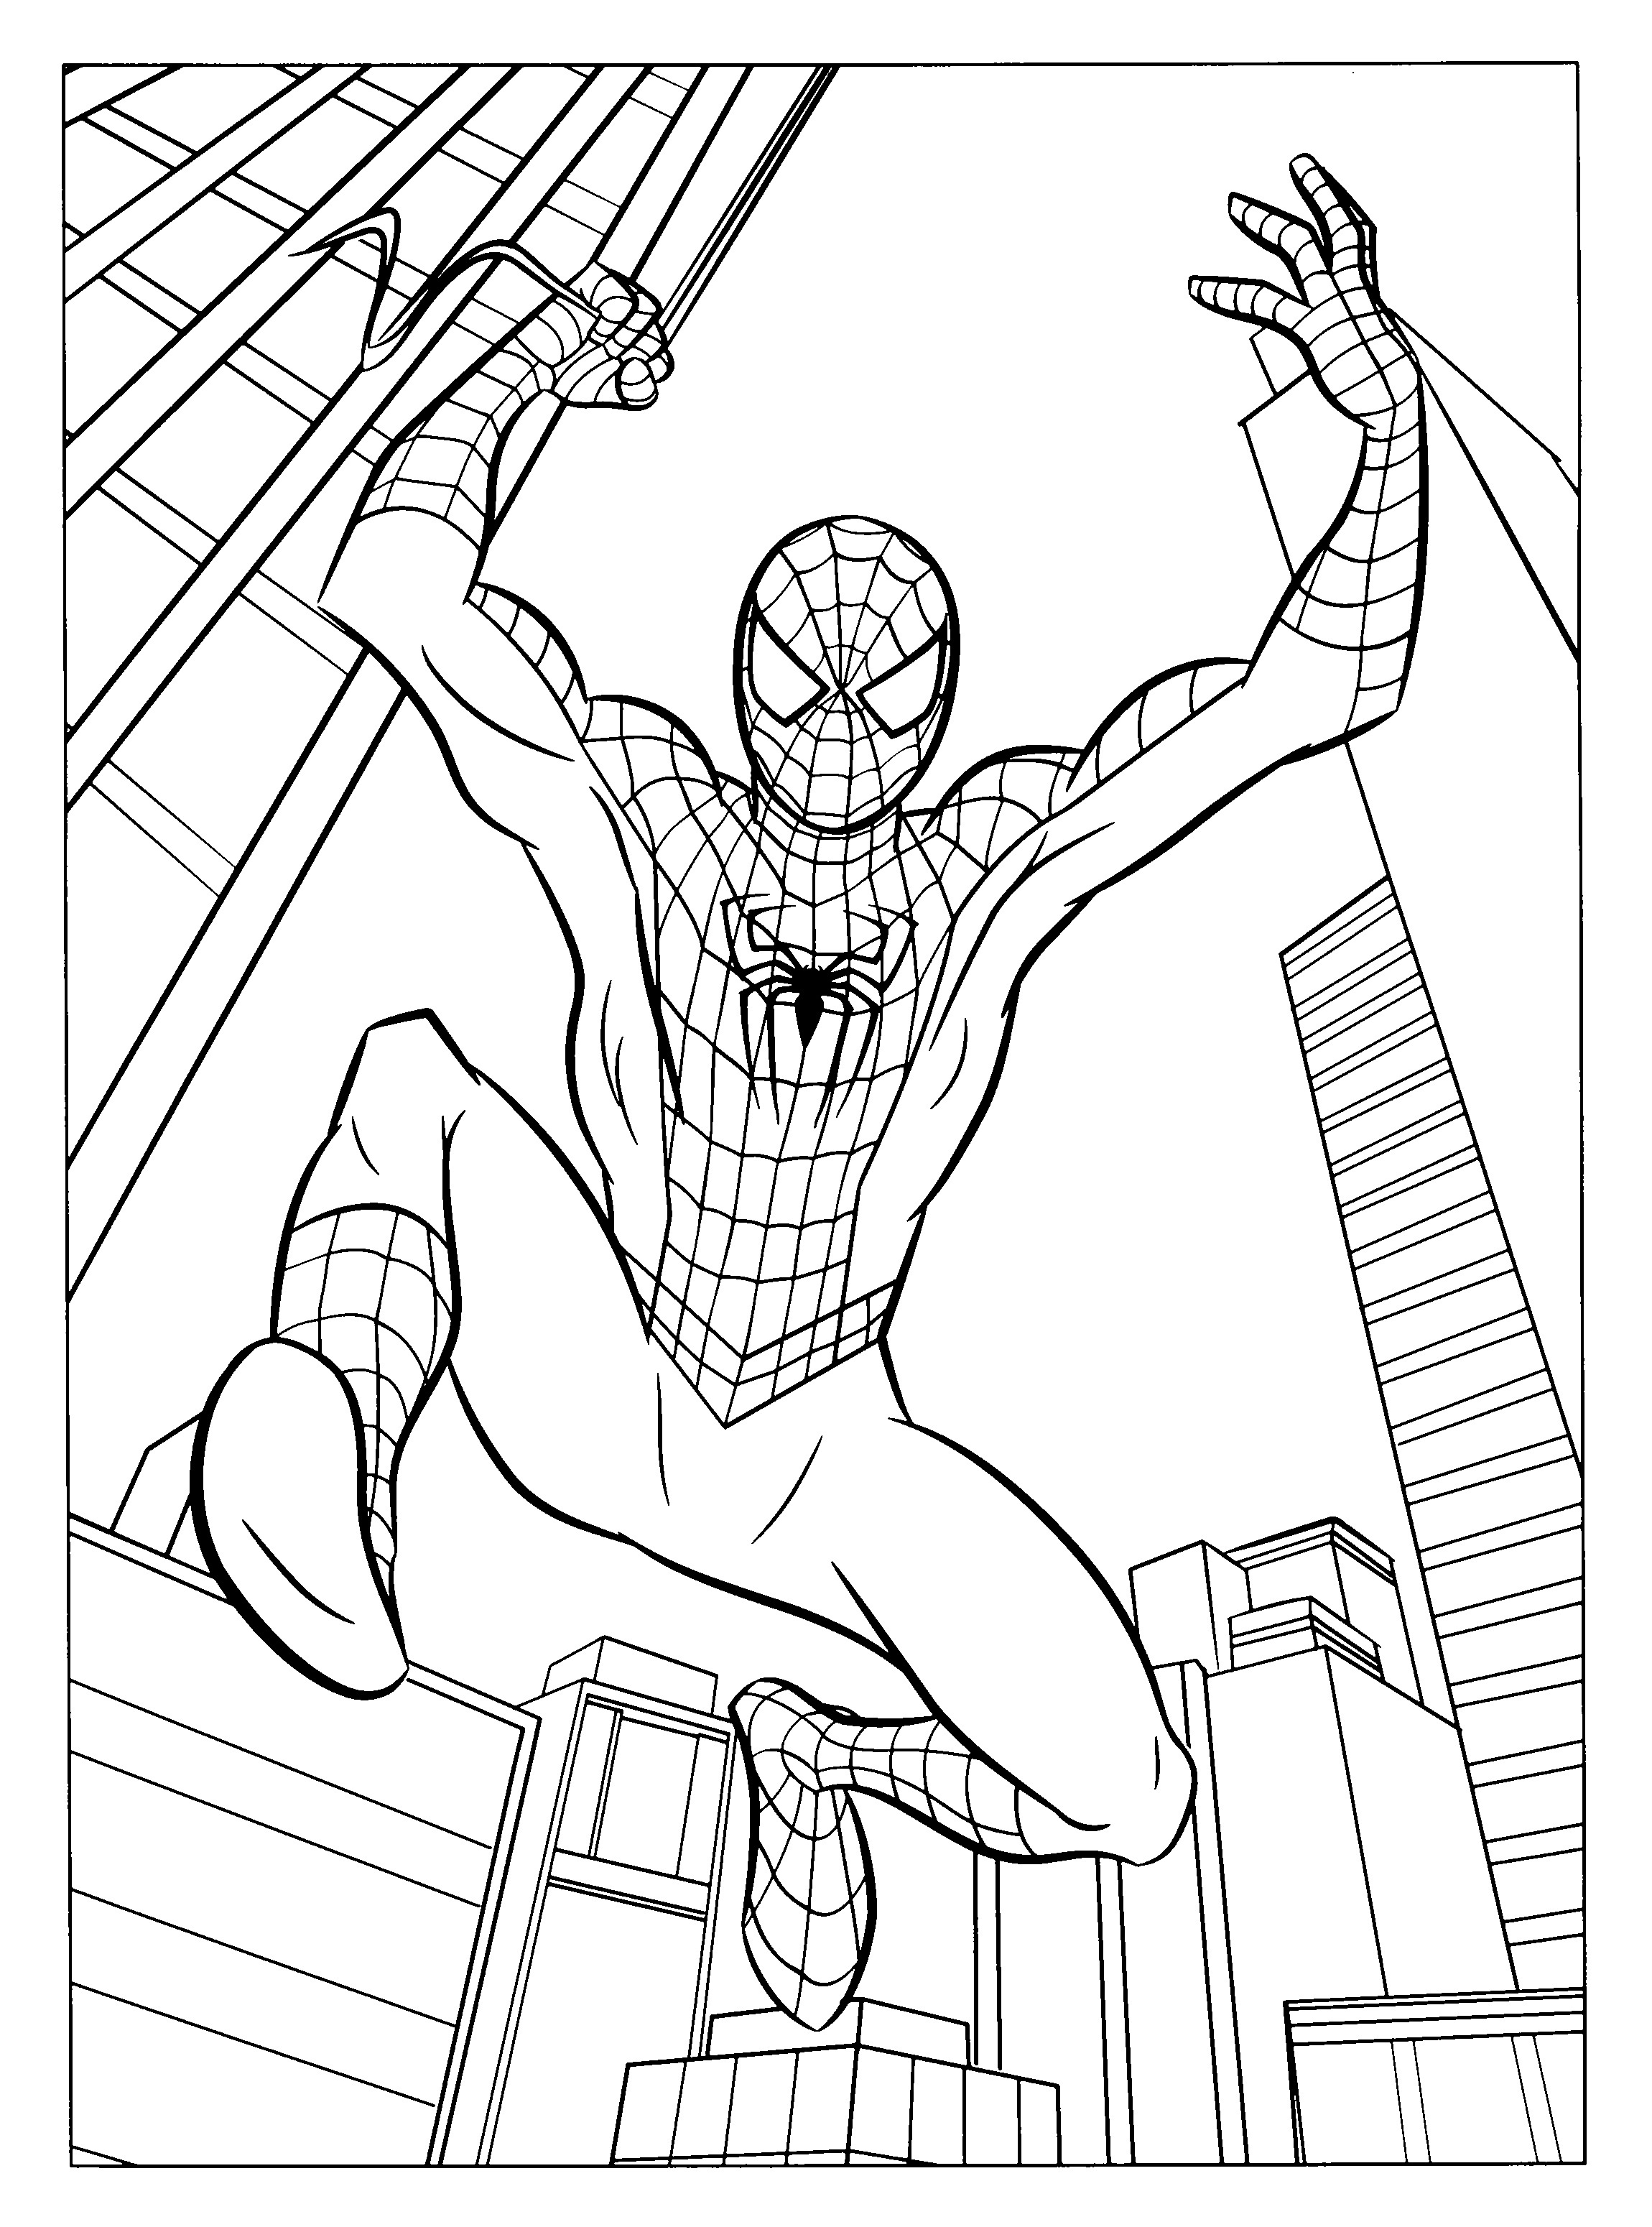 Free printable spiderman coloring pages for kids for Spiderman coloring book pages